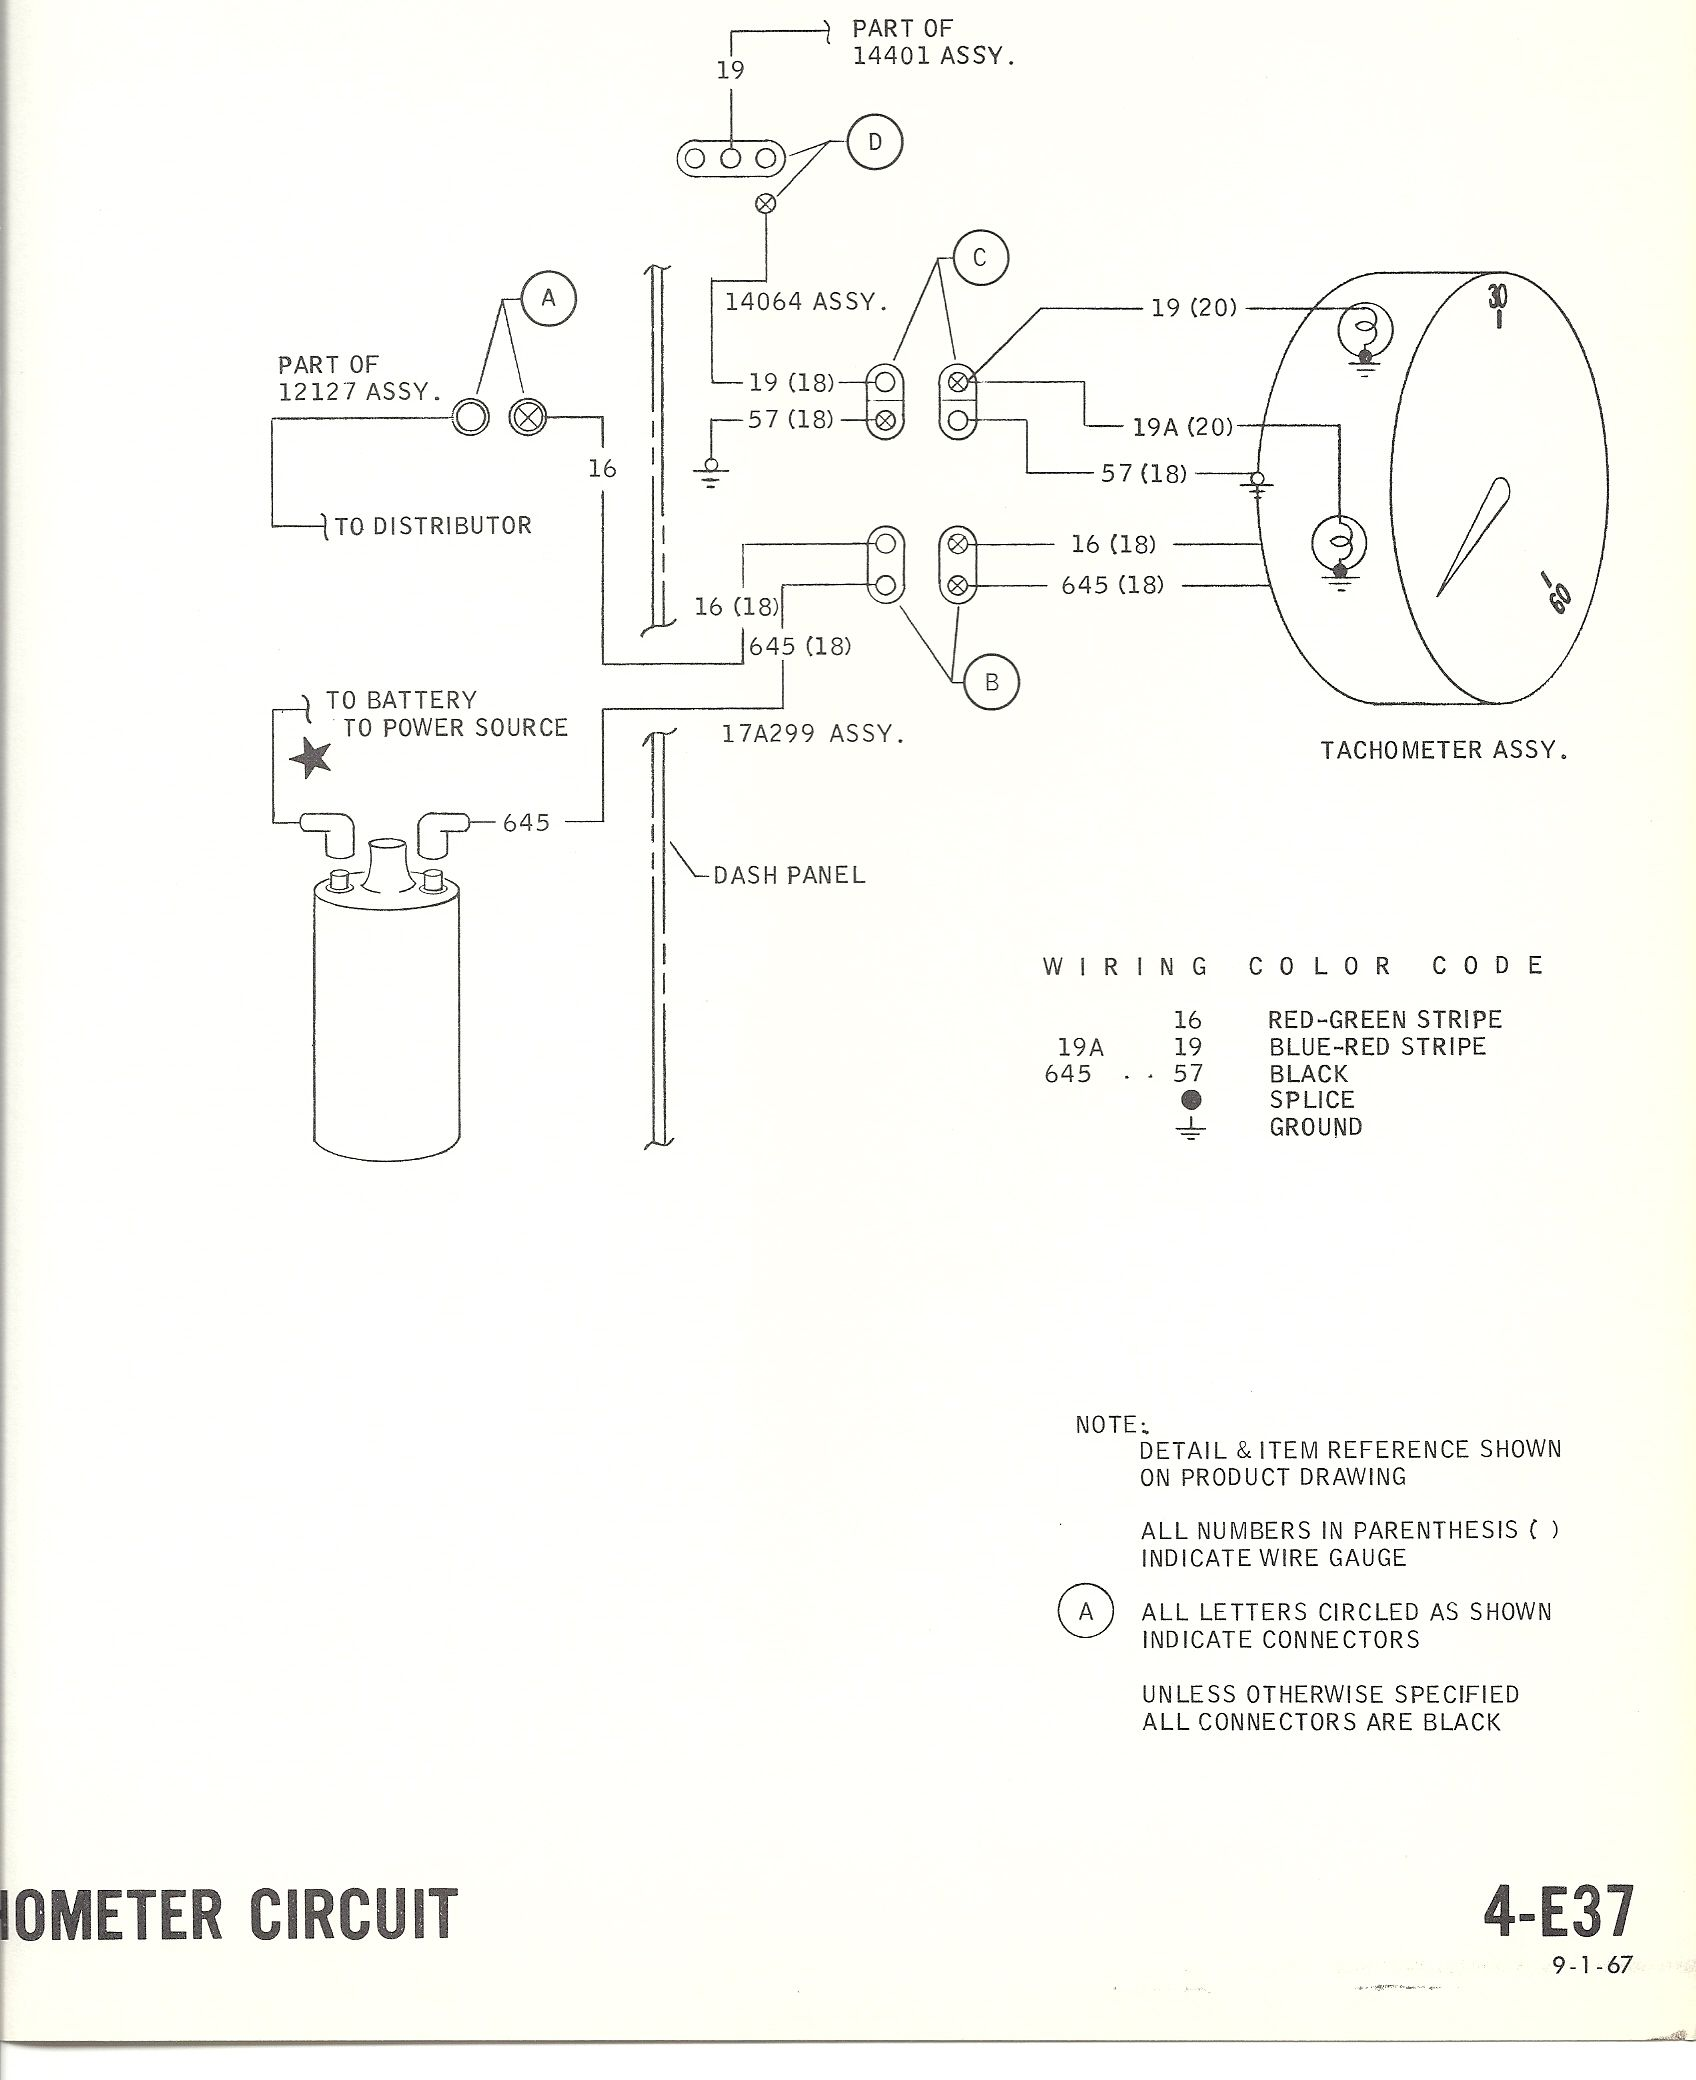 2b2f8e488a4c6a6b870c00f5af30de6c 1967 mustang wiring to tachometer 1968 mustang wiring 1967 mustang ignition wiring diagram at bayanpartner.co